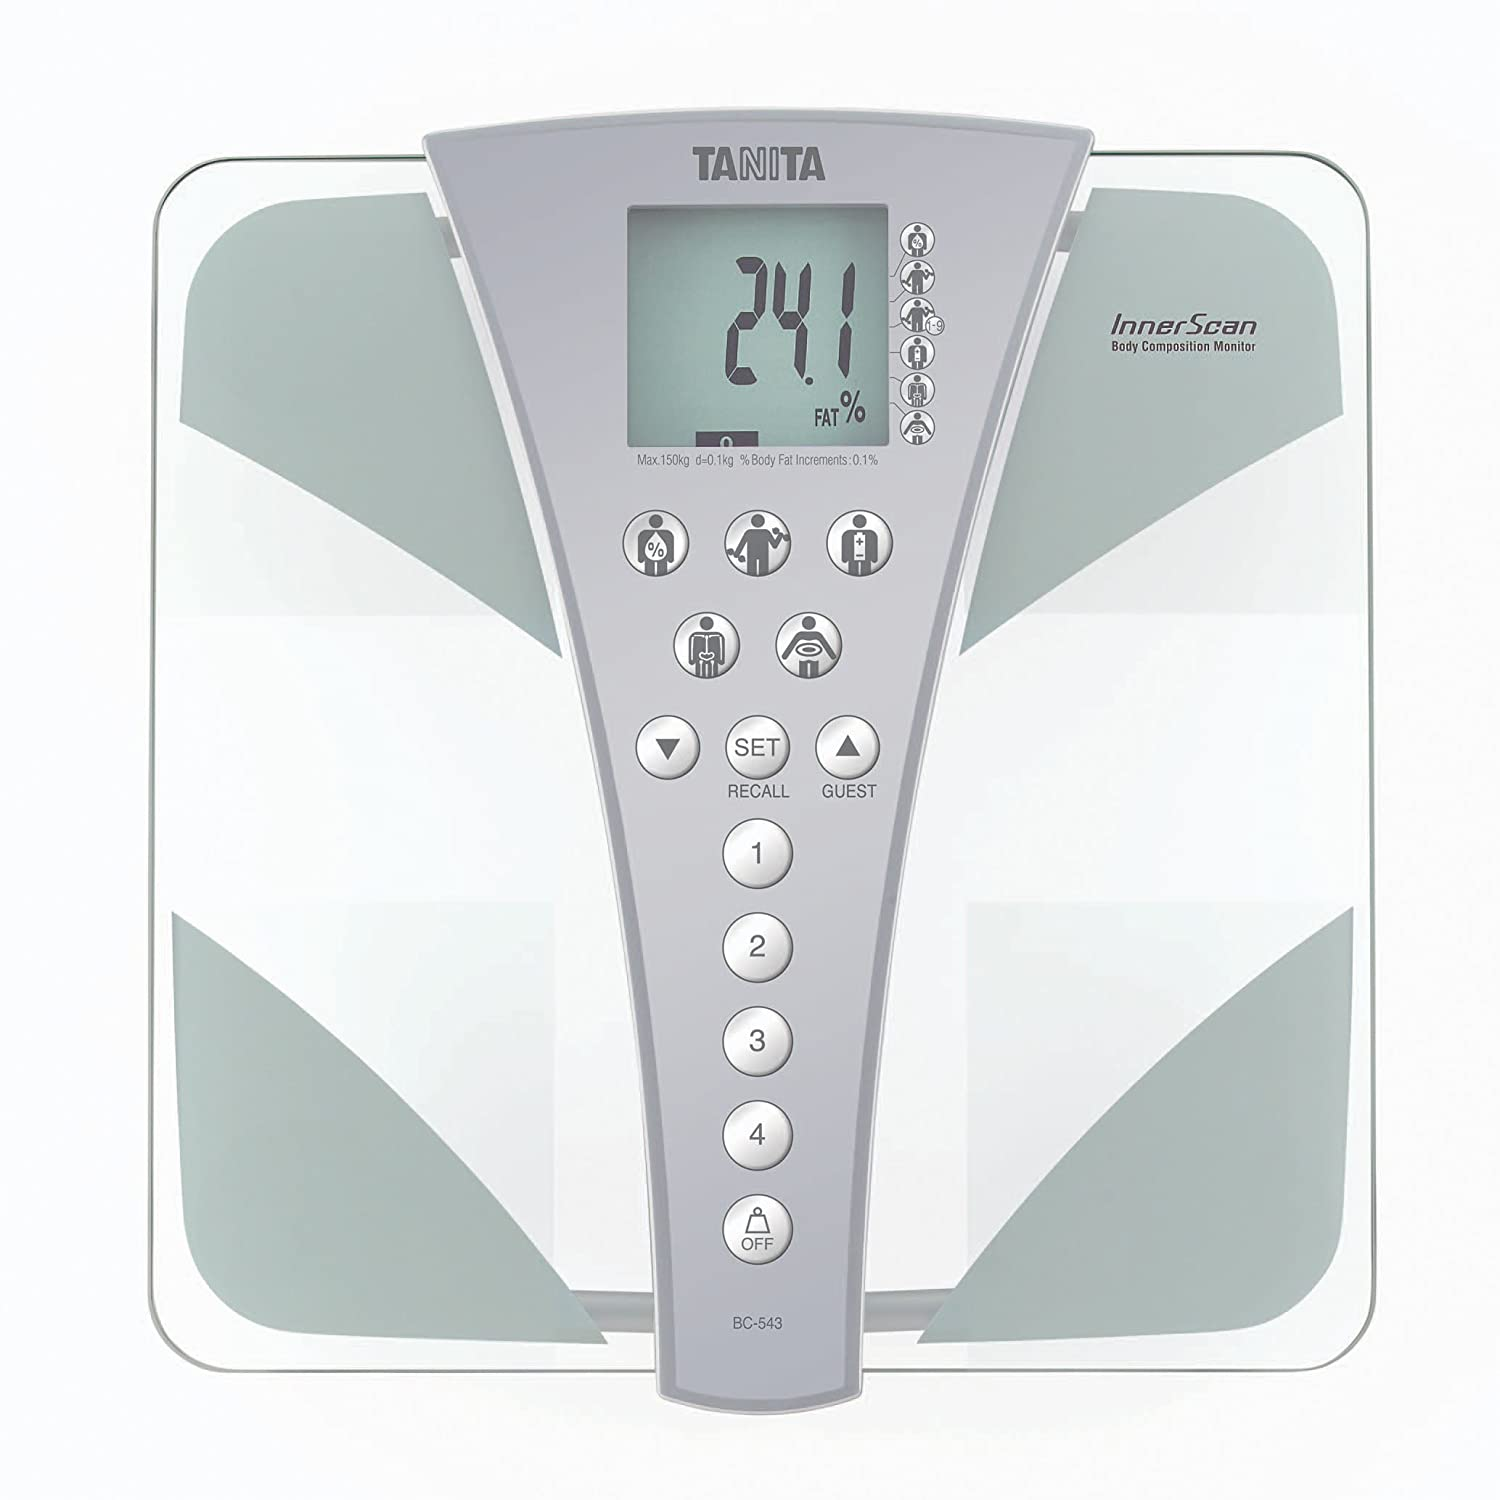 Amazon.com: (TANITA) InnerScan Body Composition Monitor (BC-543): Home & Kitchen